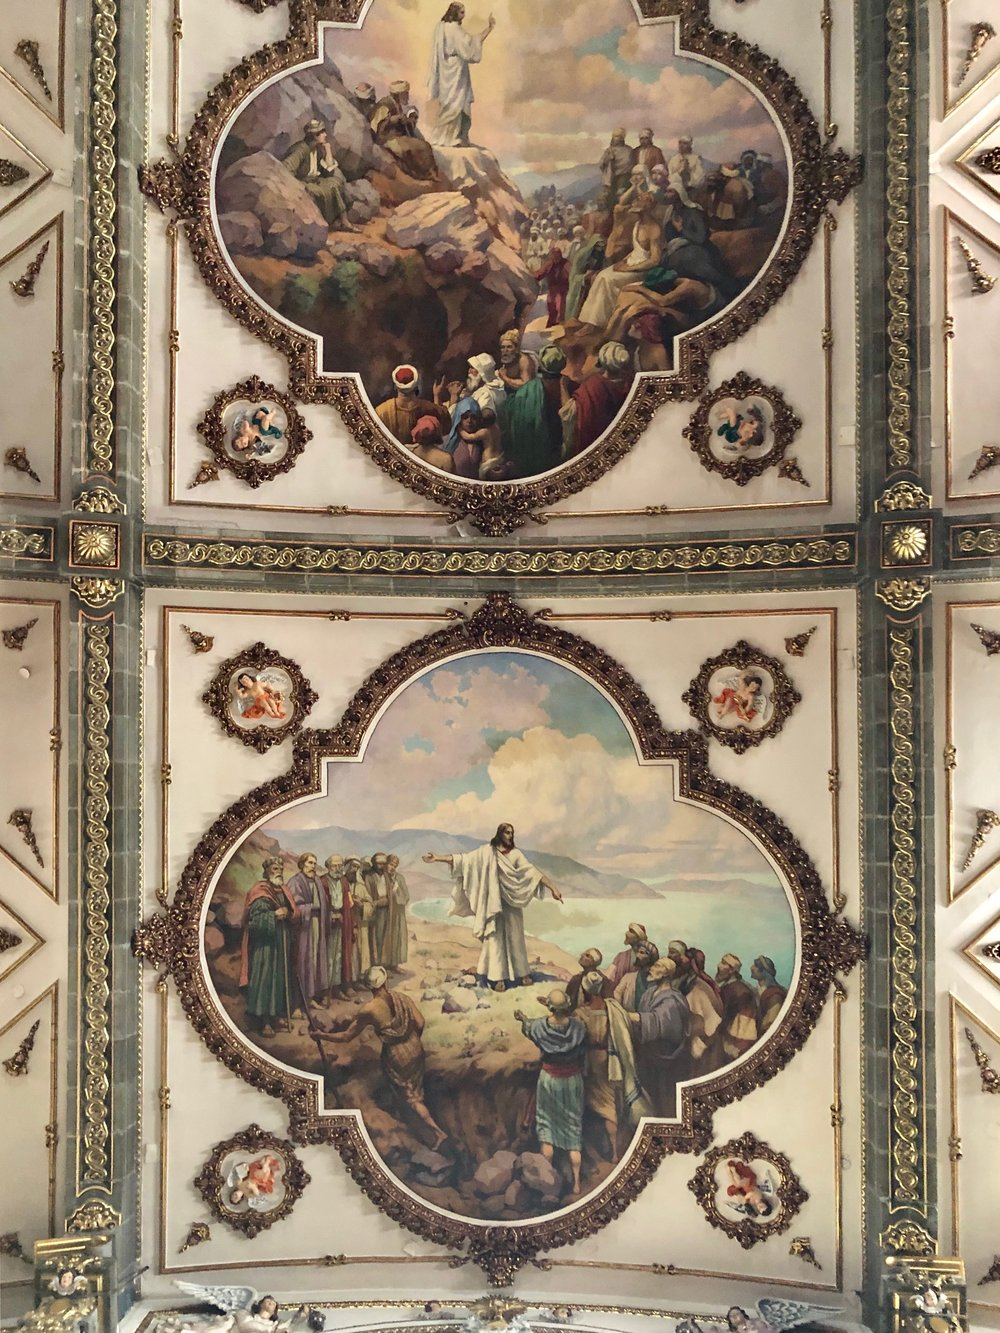 The ceiling depicts scenes from the life of Jesus, including the Sermon on the Mount